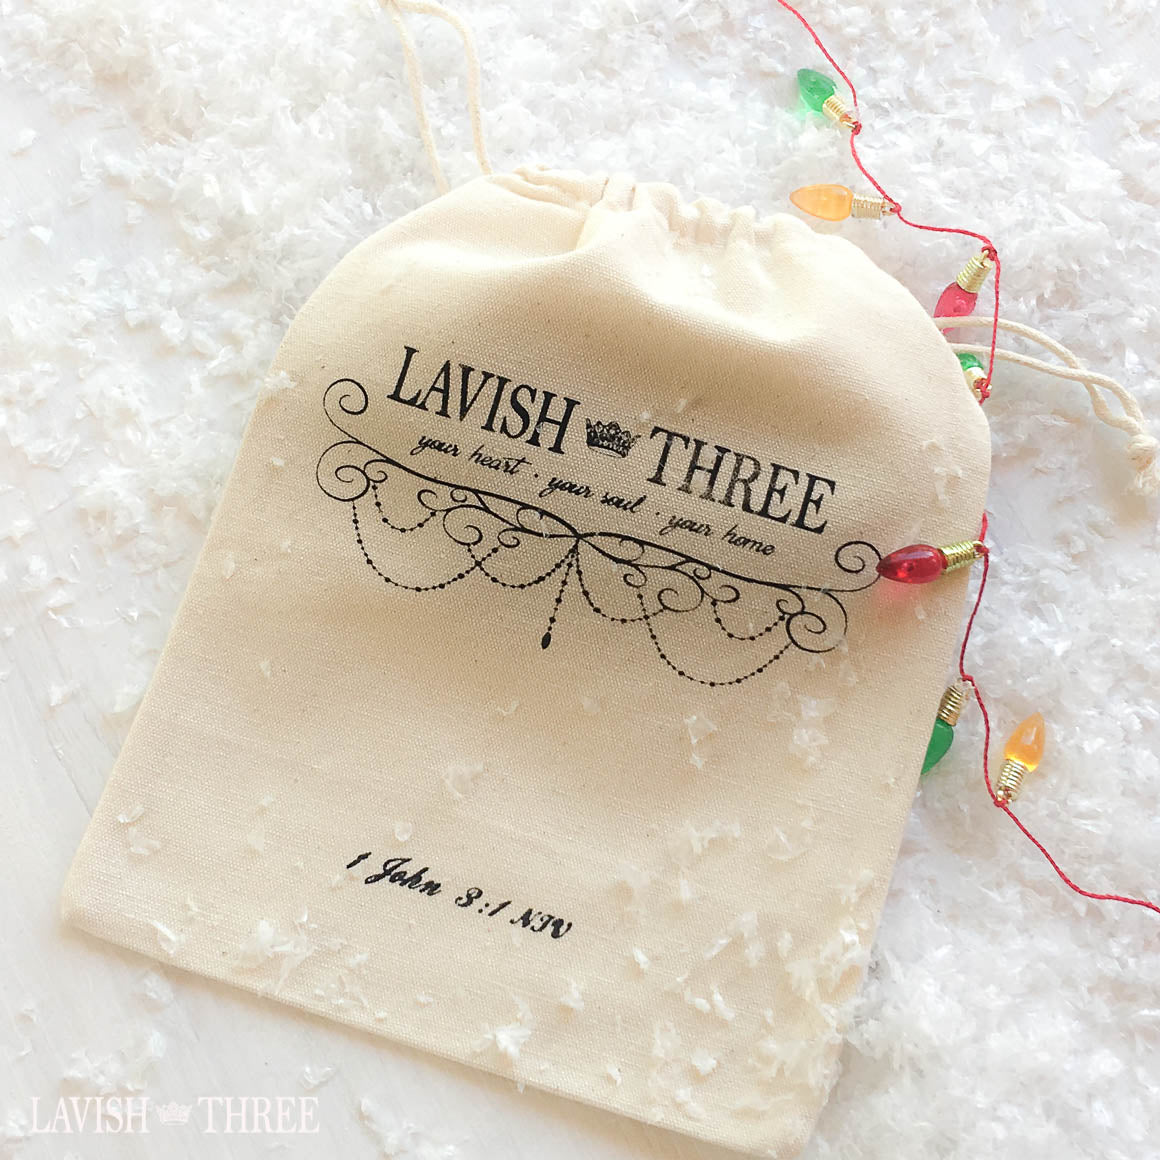 Lavish Three gift tote bag draw string canvas feel